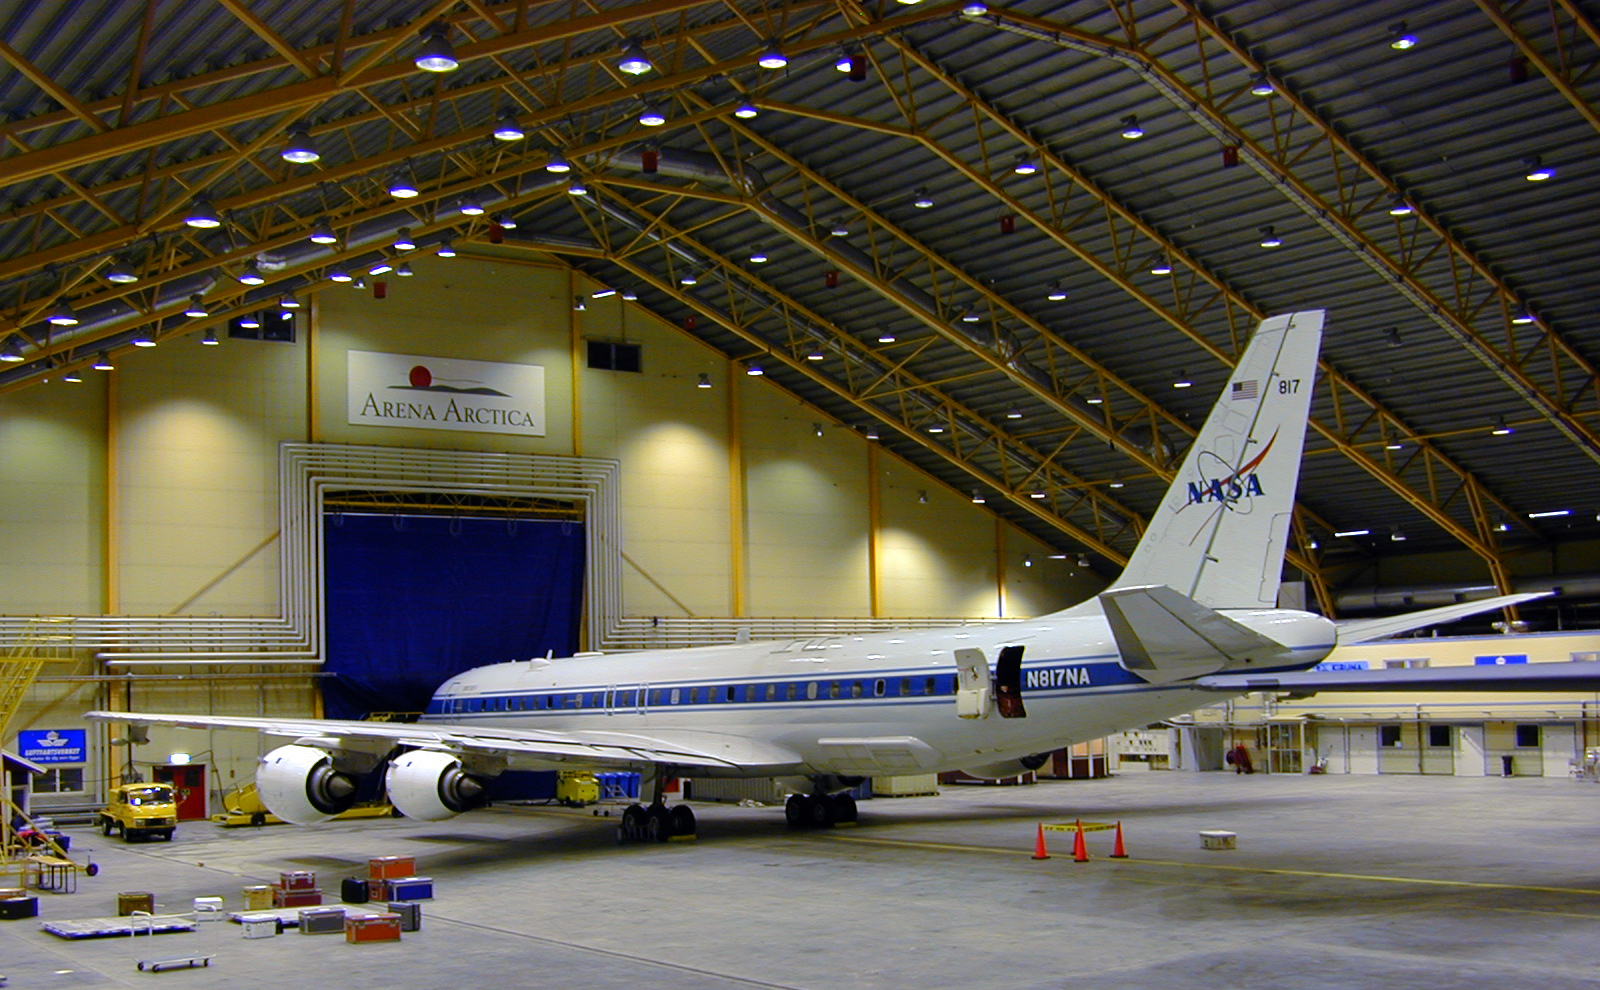 a nasa aircraft in hangar - photo #2